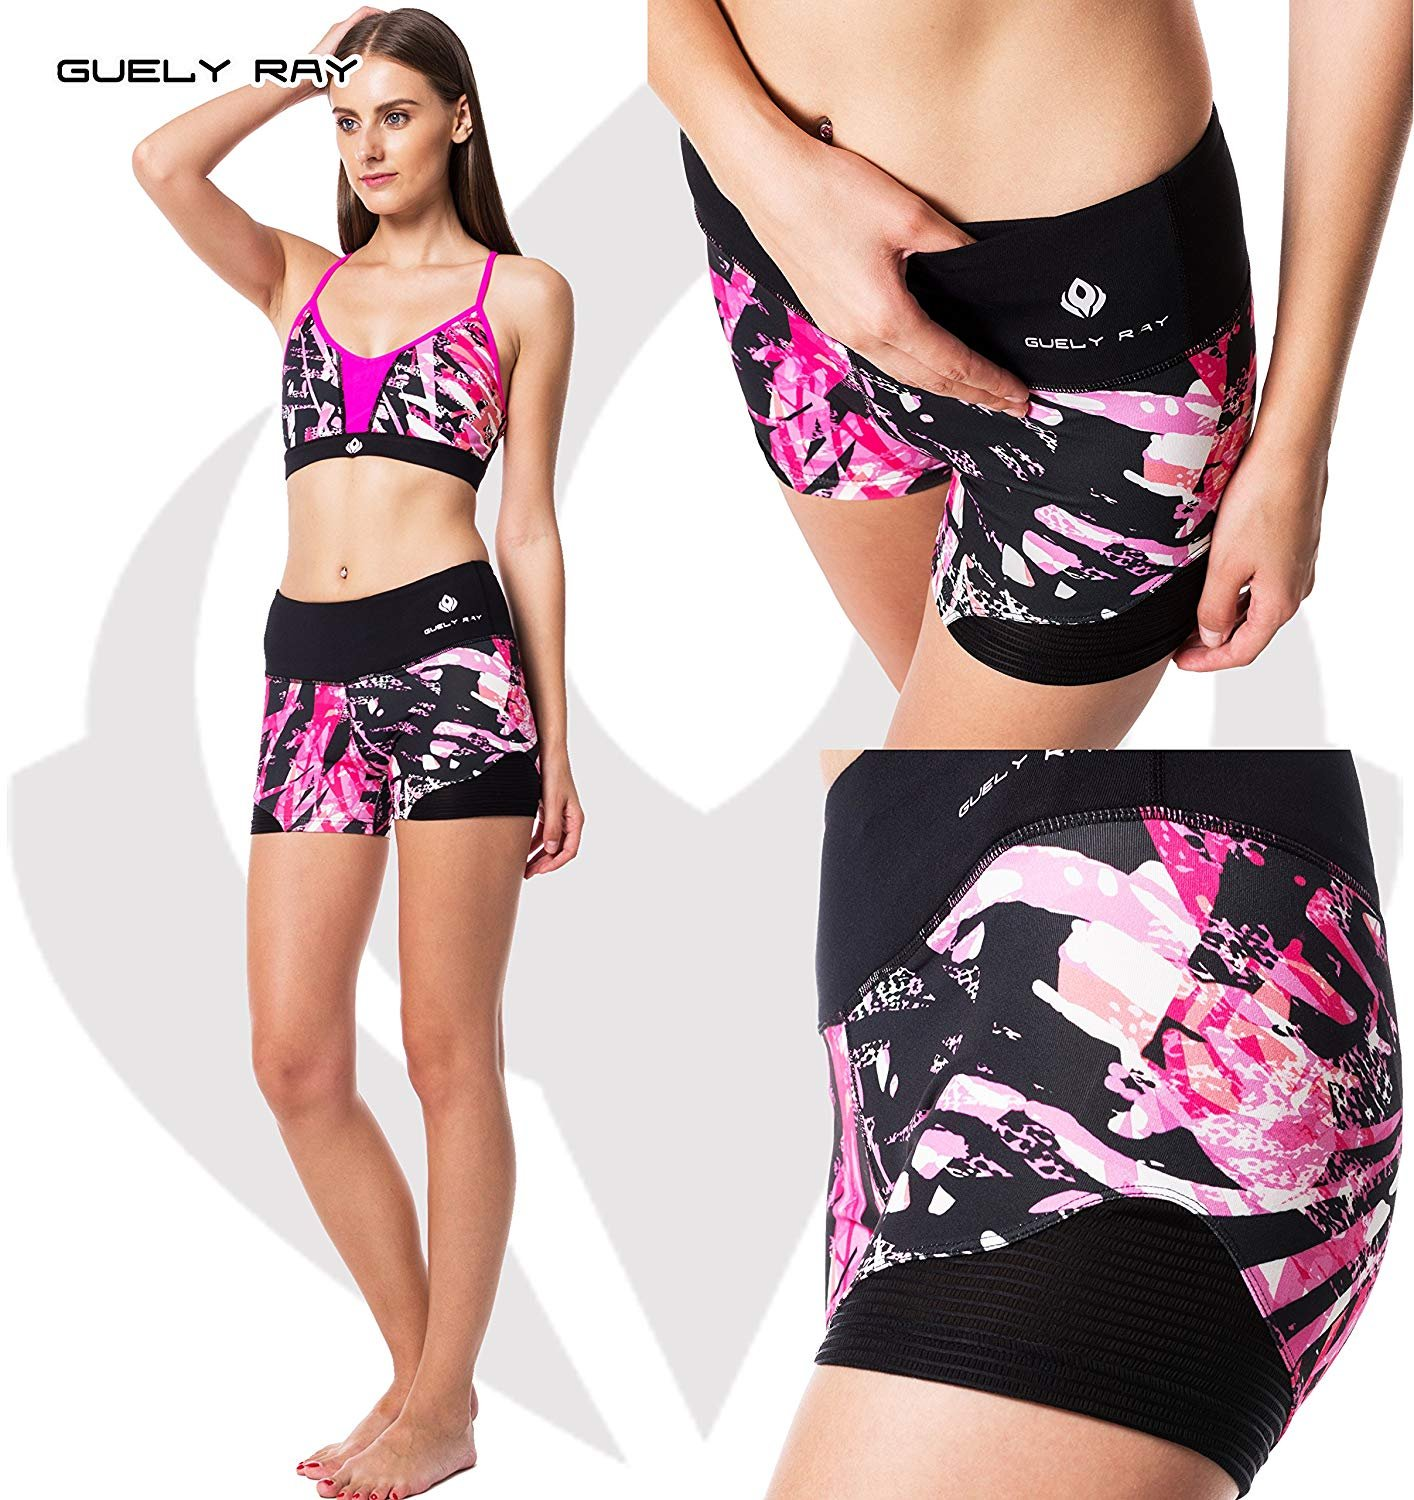 Guely Ray Women's Active Shorts for Workout & Training with Hidden Pocket 11 Styles (L (US 9-11: Waist 29-30.5; Hip 38-39.5), Pink Jungle 3.6'' Inseam) by Guely Ray (Image #3)